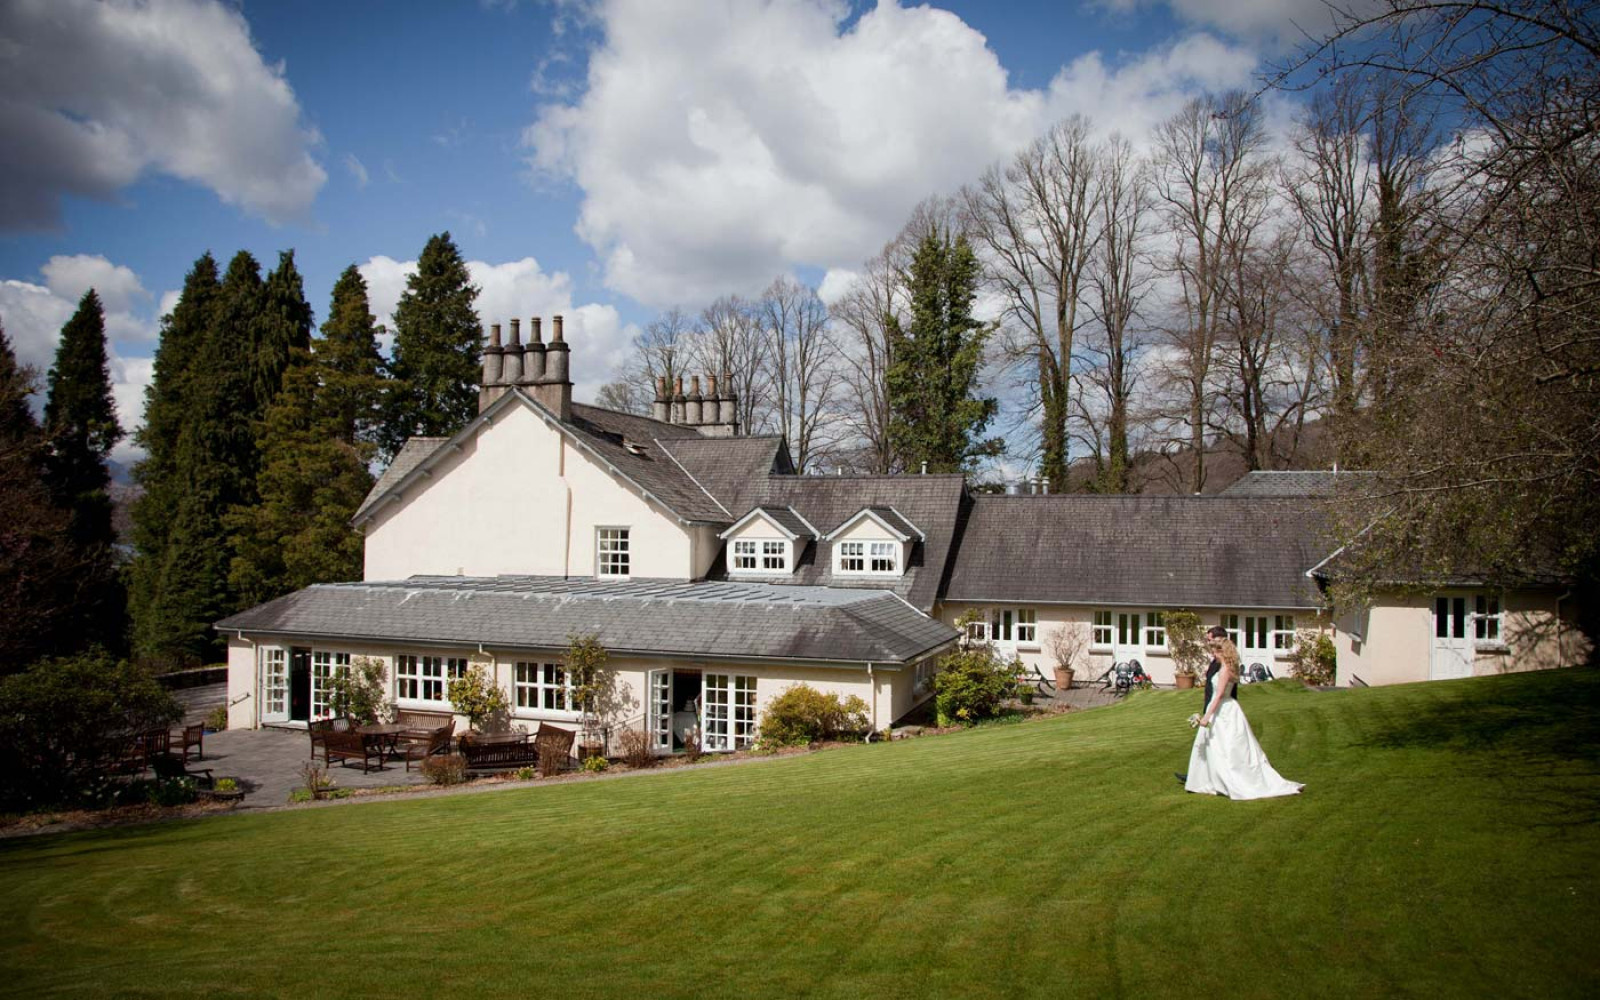 briery wood country house, northumberland wedding venue, north east wedding venue